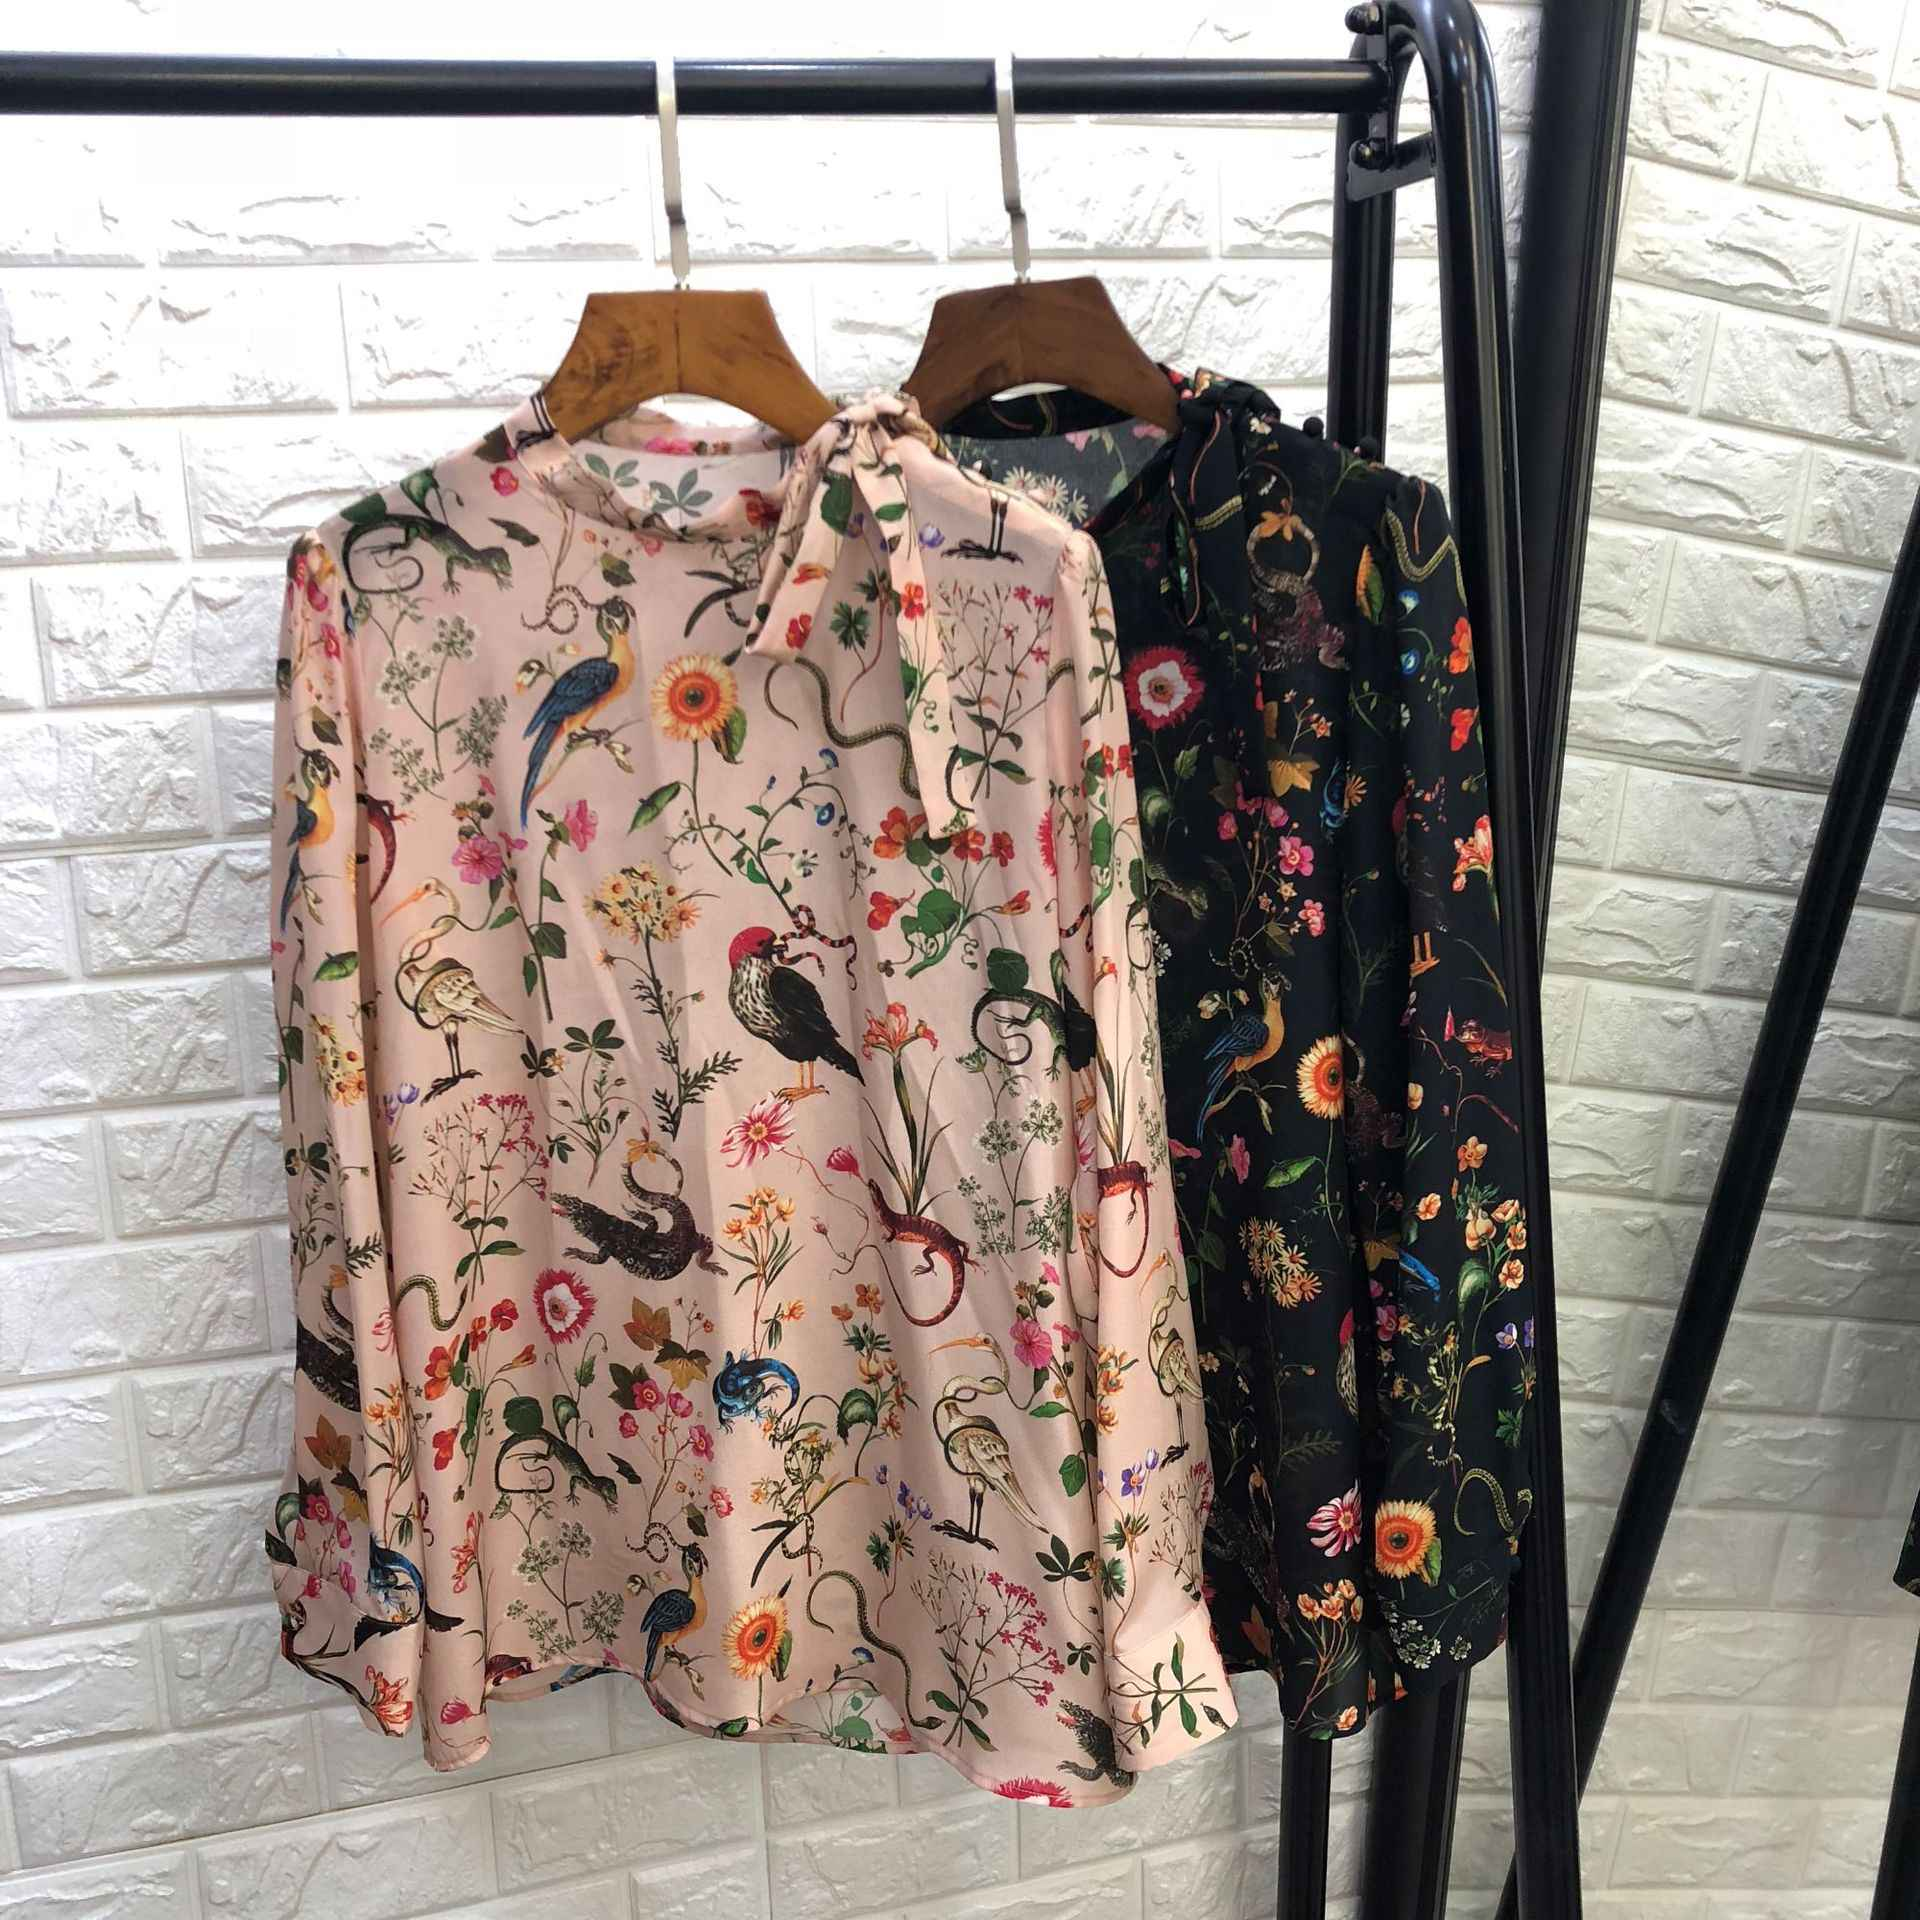 21670132e3fc1 Detail Feedback Questions about Women high end runway brand silk blouse bow  tie cute buttons animal floral print tops new 2018 autumn pink black on ...